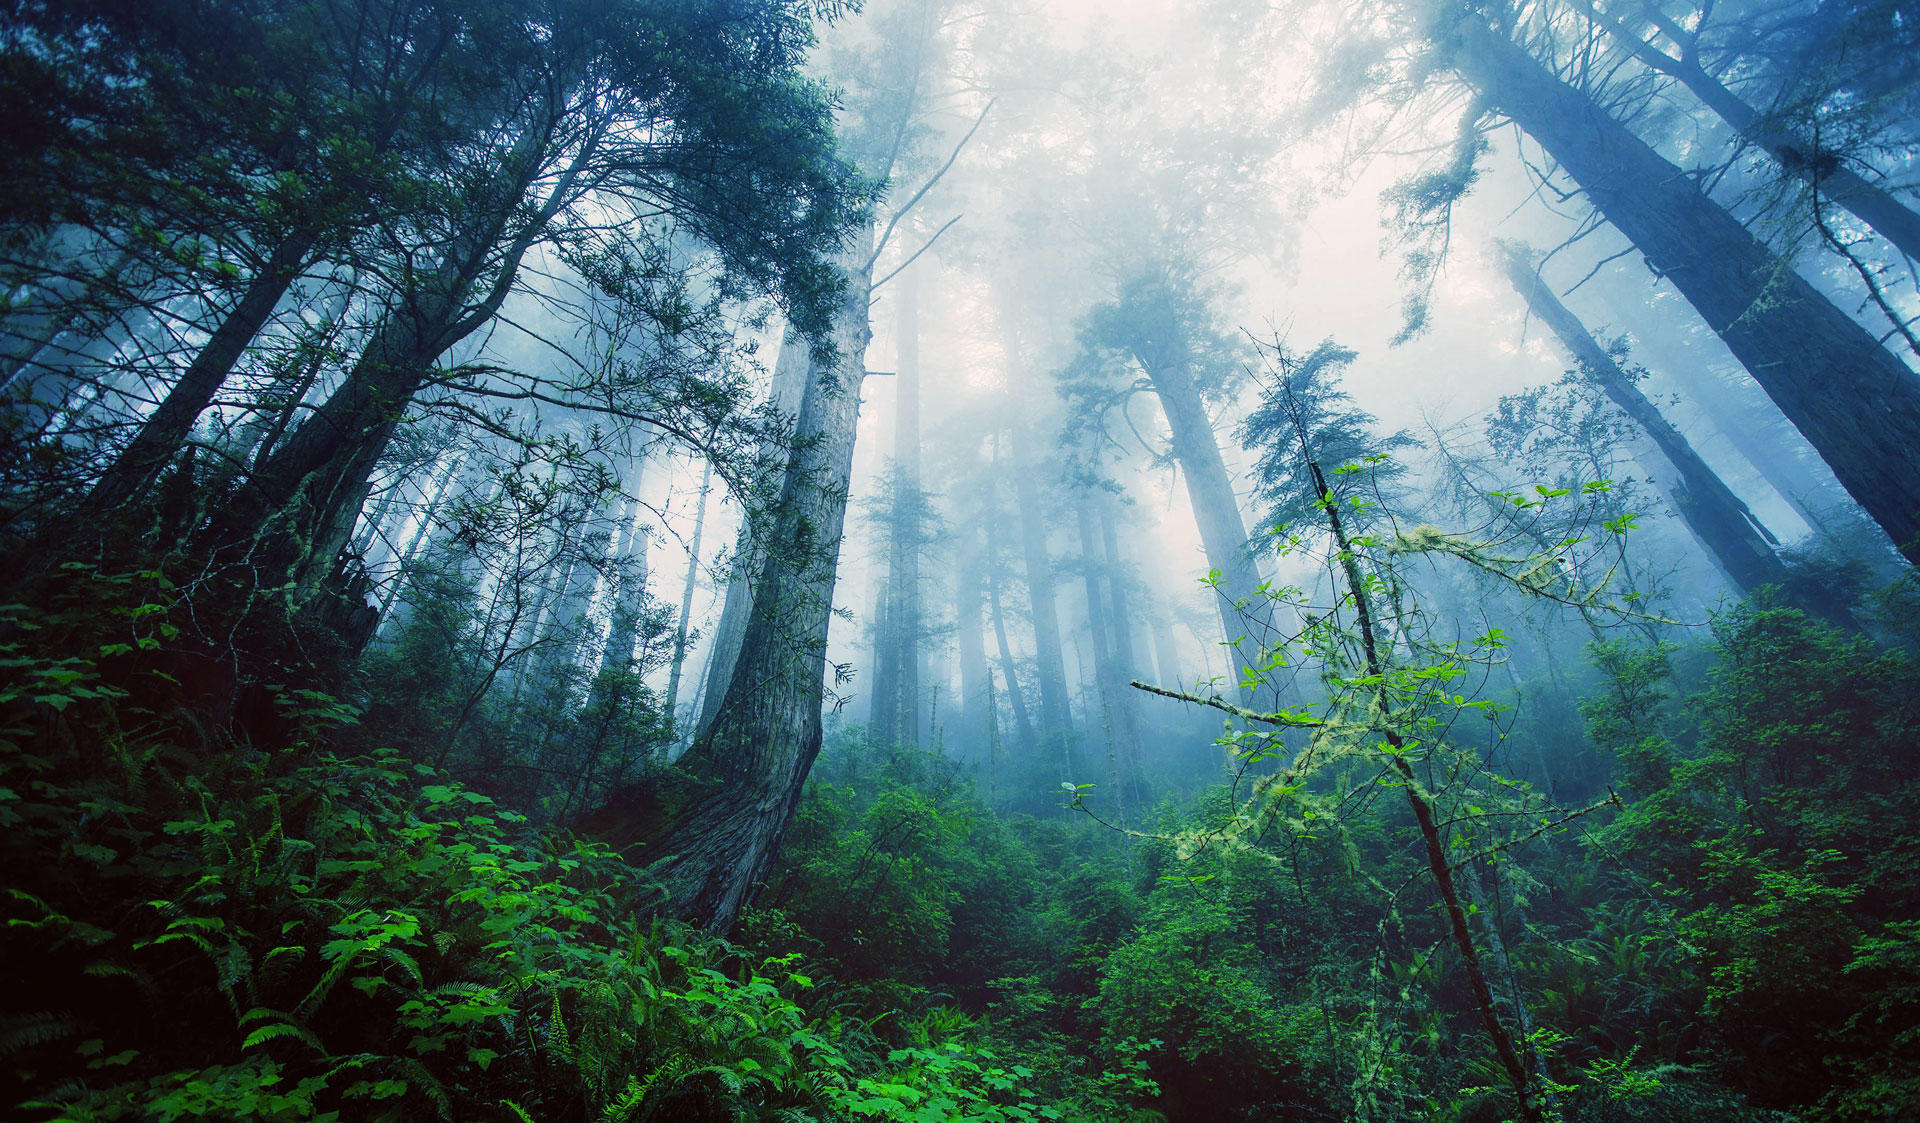 Big trees and misty air in a forest. Image of the Master's Programme in Forest Sciences at the University of Helsinki.